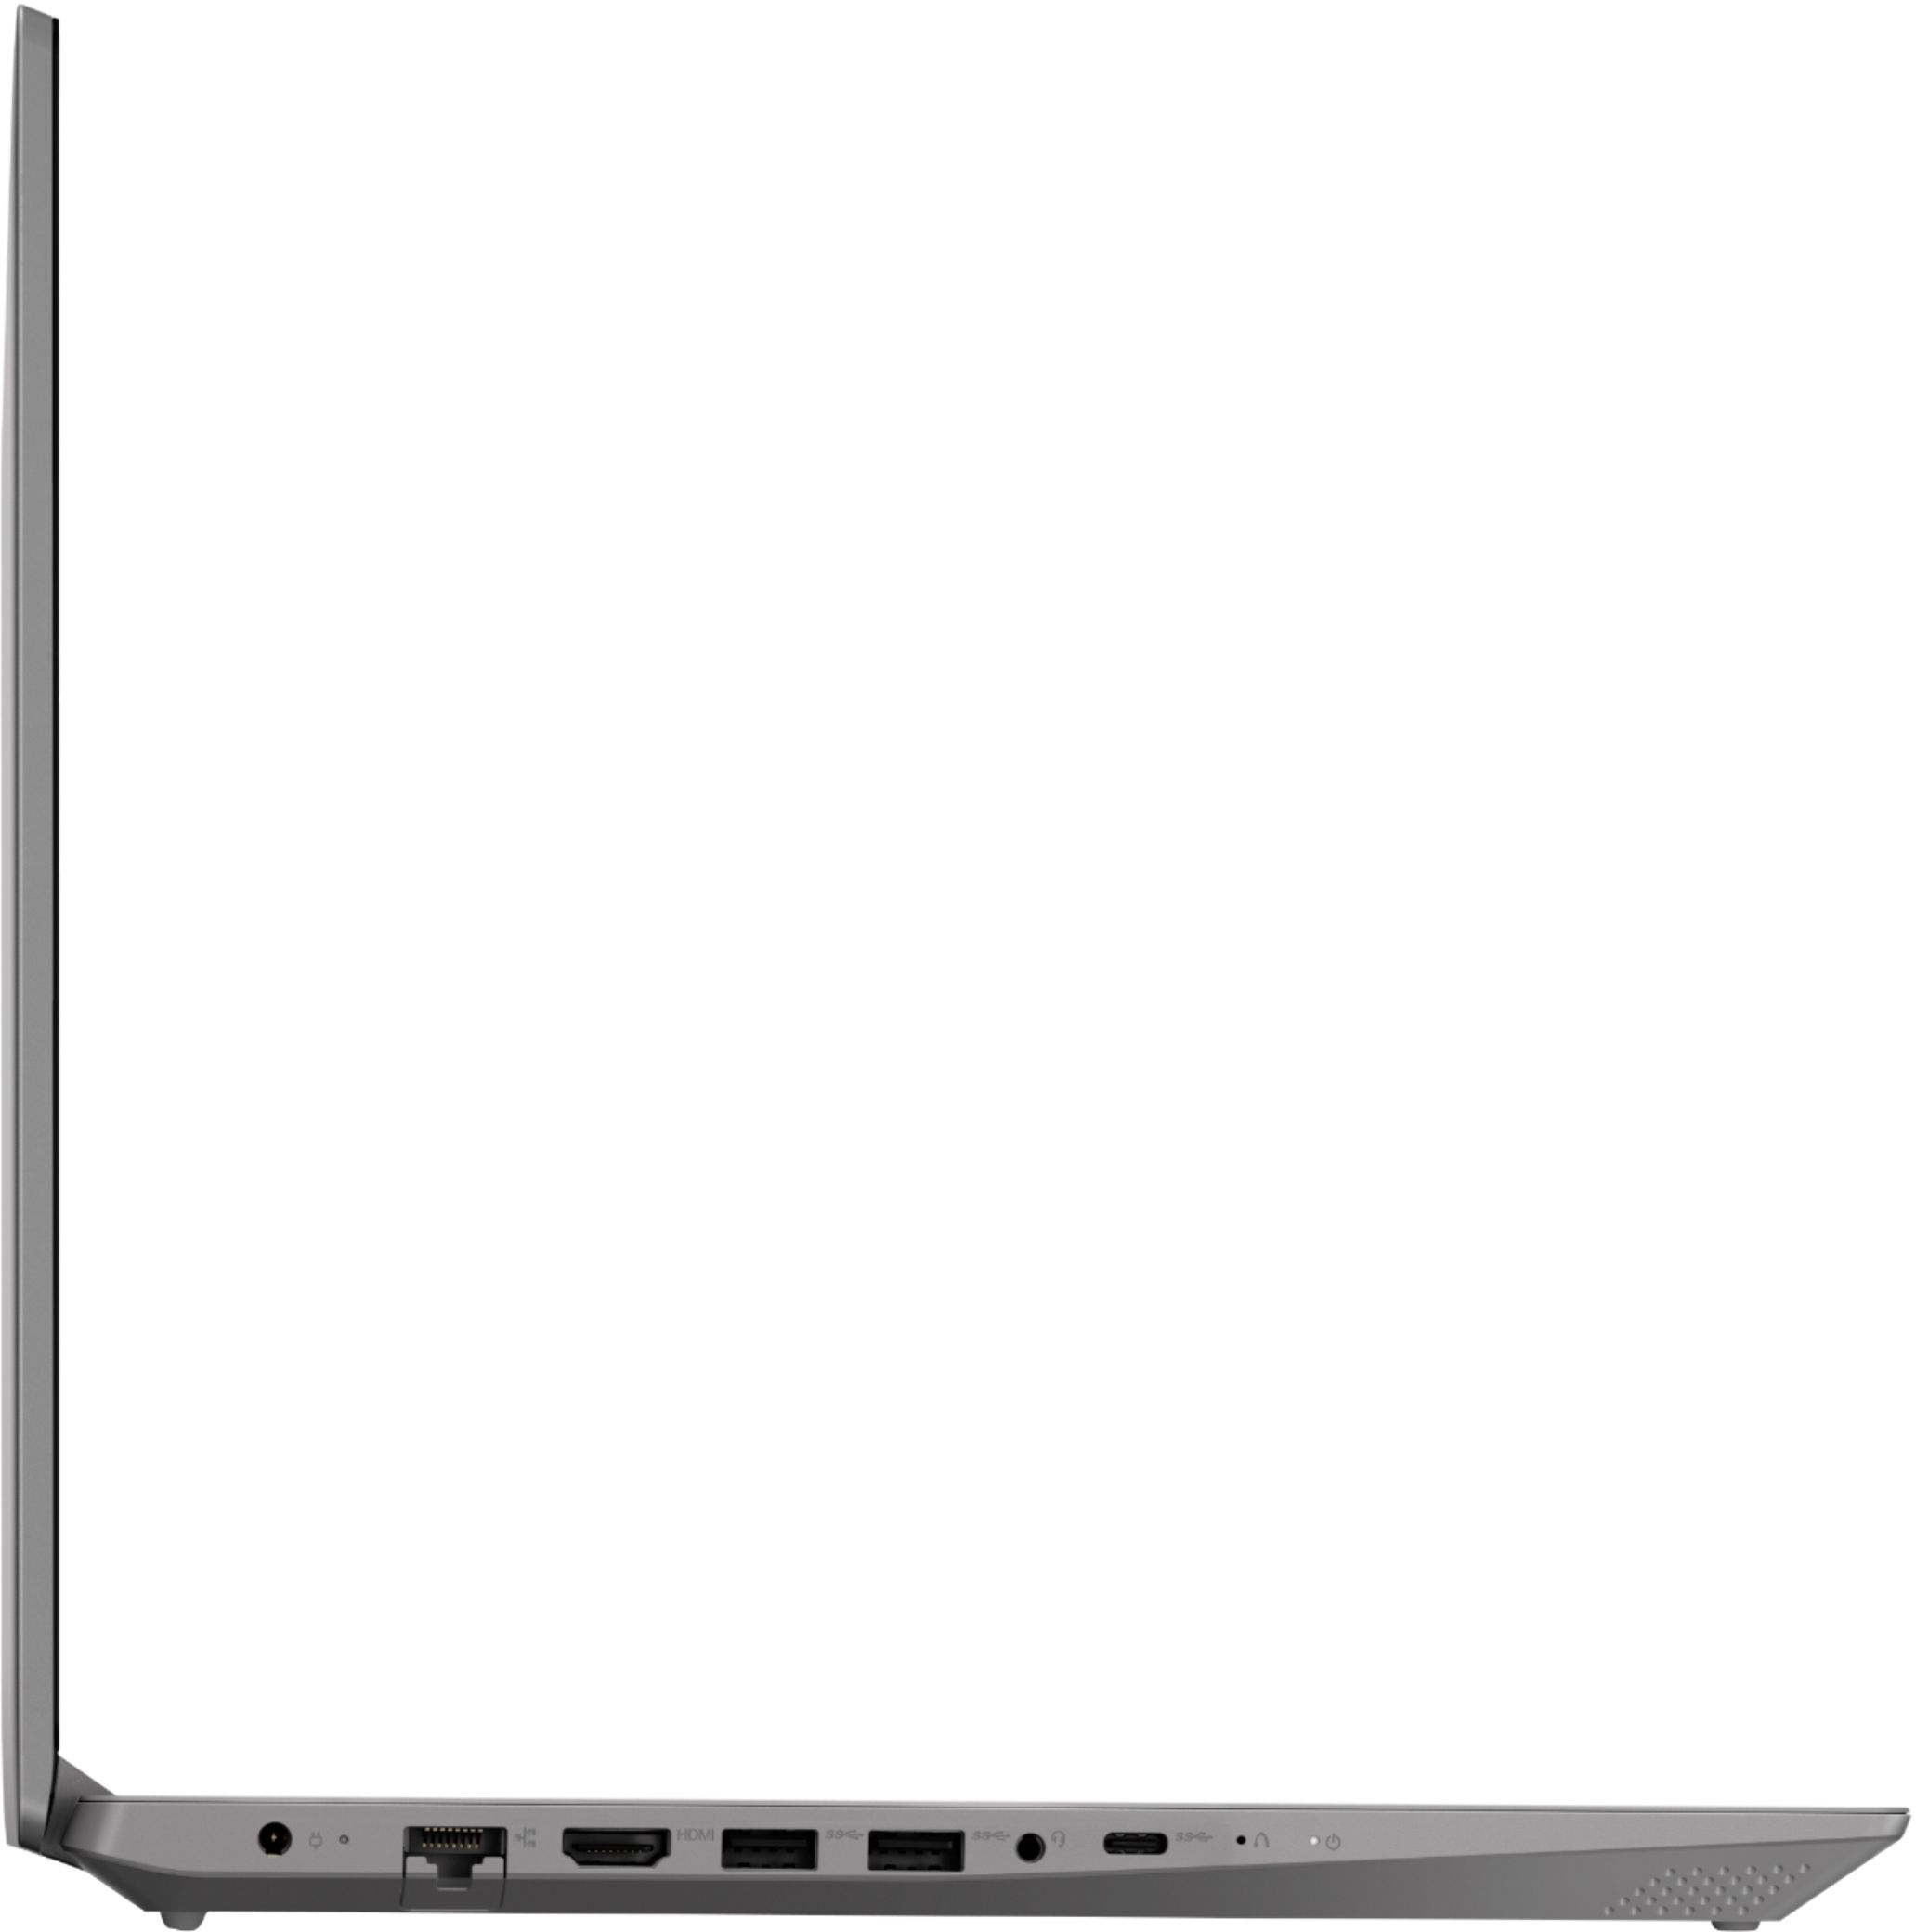 "Alt View Zoom 10. Lenovo - Geek Squad Certified Refurbished L340-15API 15.6"" Laptop - AMD Ryzen 3 - 8GB Memory - 1TB HDD - Platinum Gray."